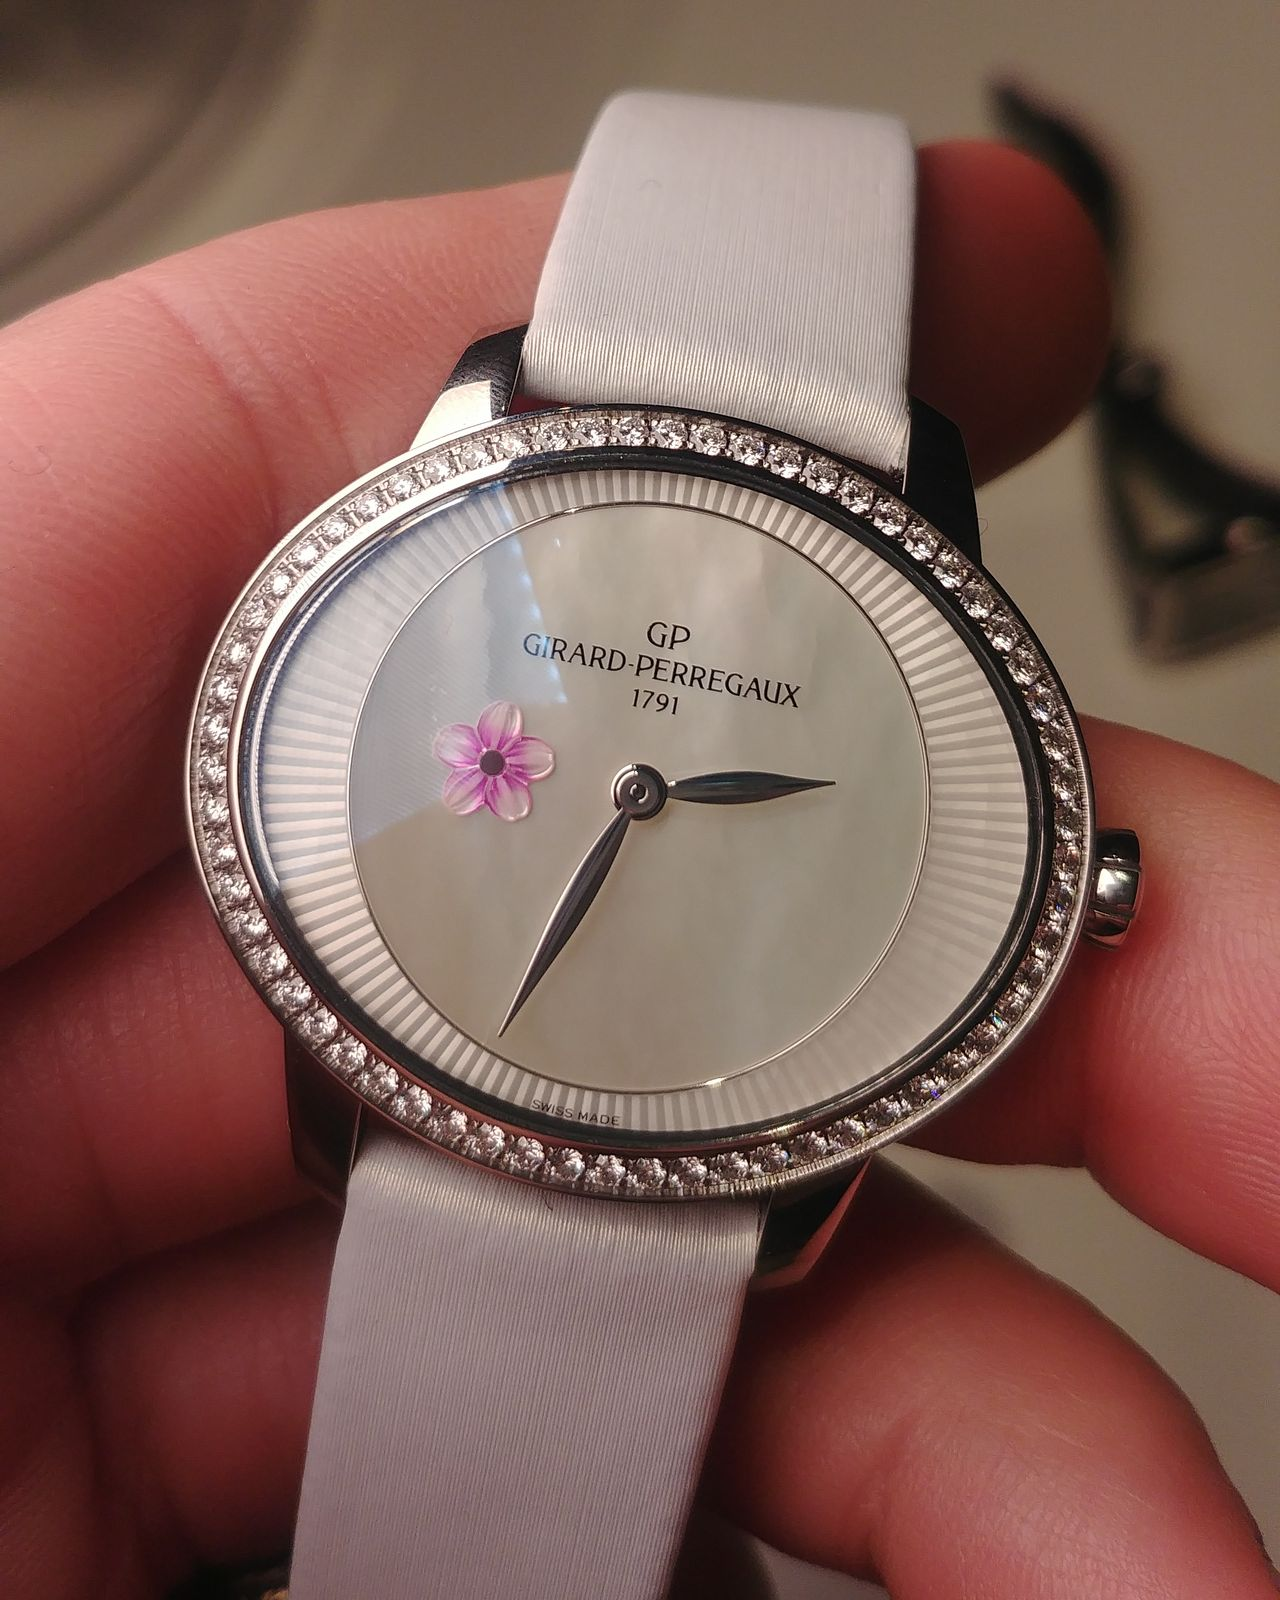 Girard-Perregaux Cat's Eye Plum Blossom - a belépőmodellnek is van bája